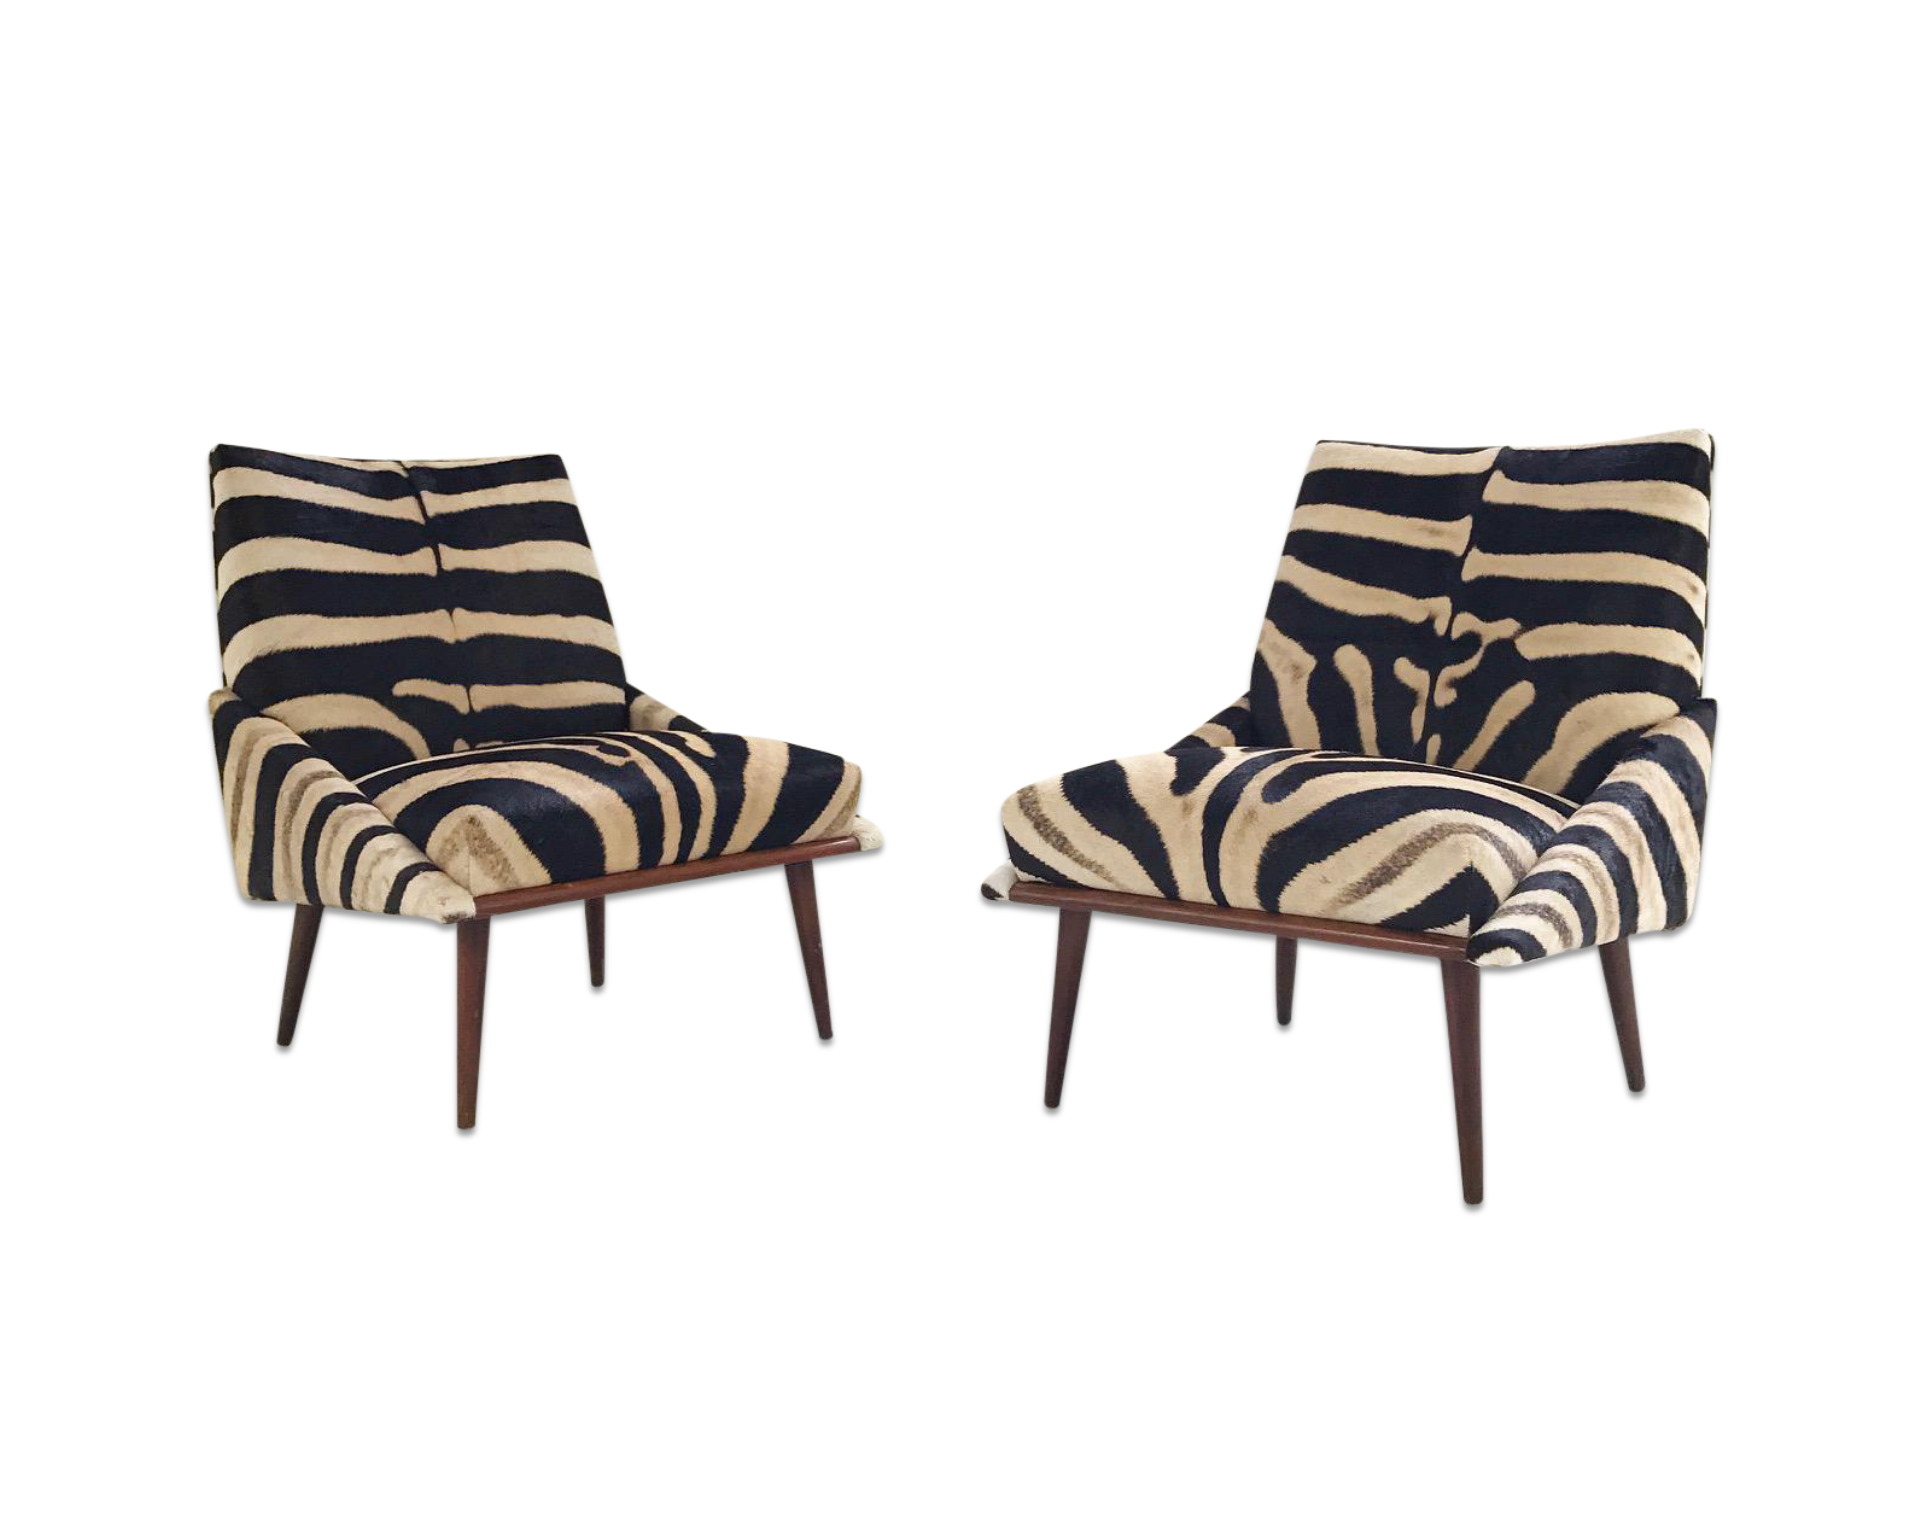 Lounge Chairs In Zebra Hide Pair Forsyth